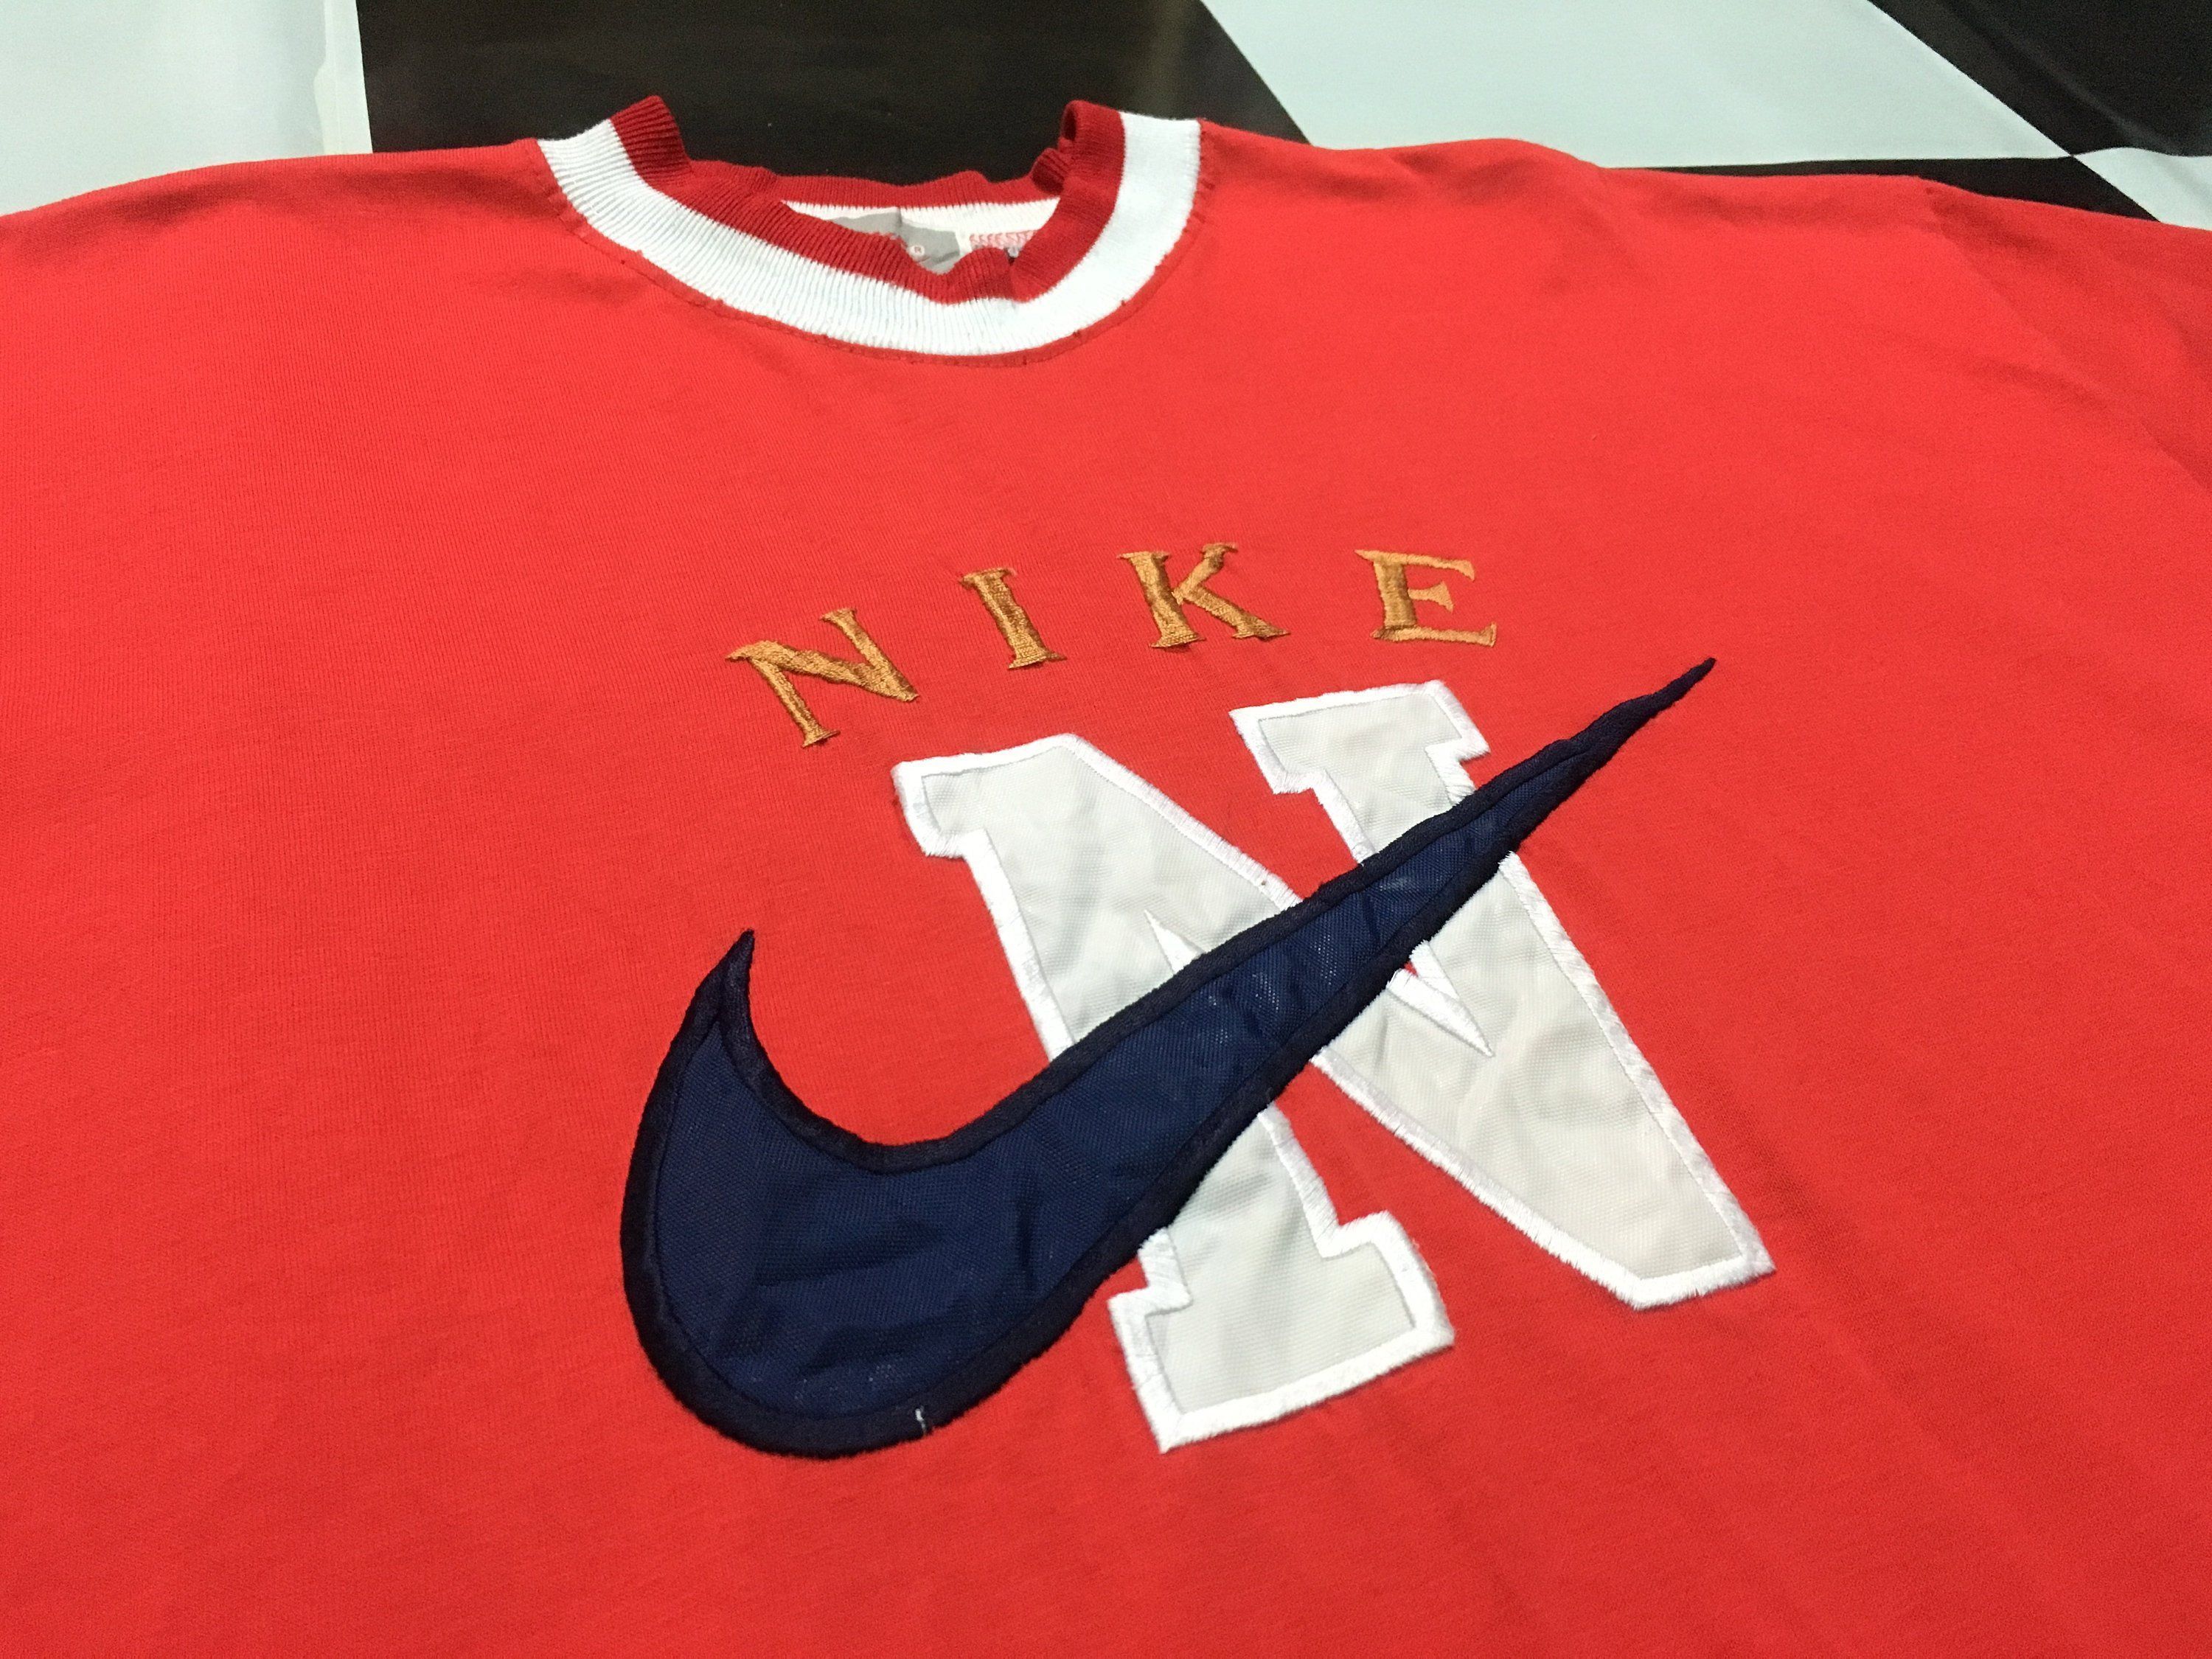 6dc0dfe5 Vintage Nike shirt Nike big swoosh embroidered logo Size XL RED 90s Nike  gray tag by AlivevintageShop on Etsy